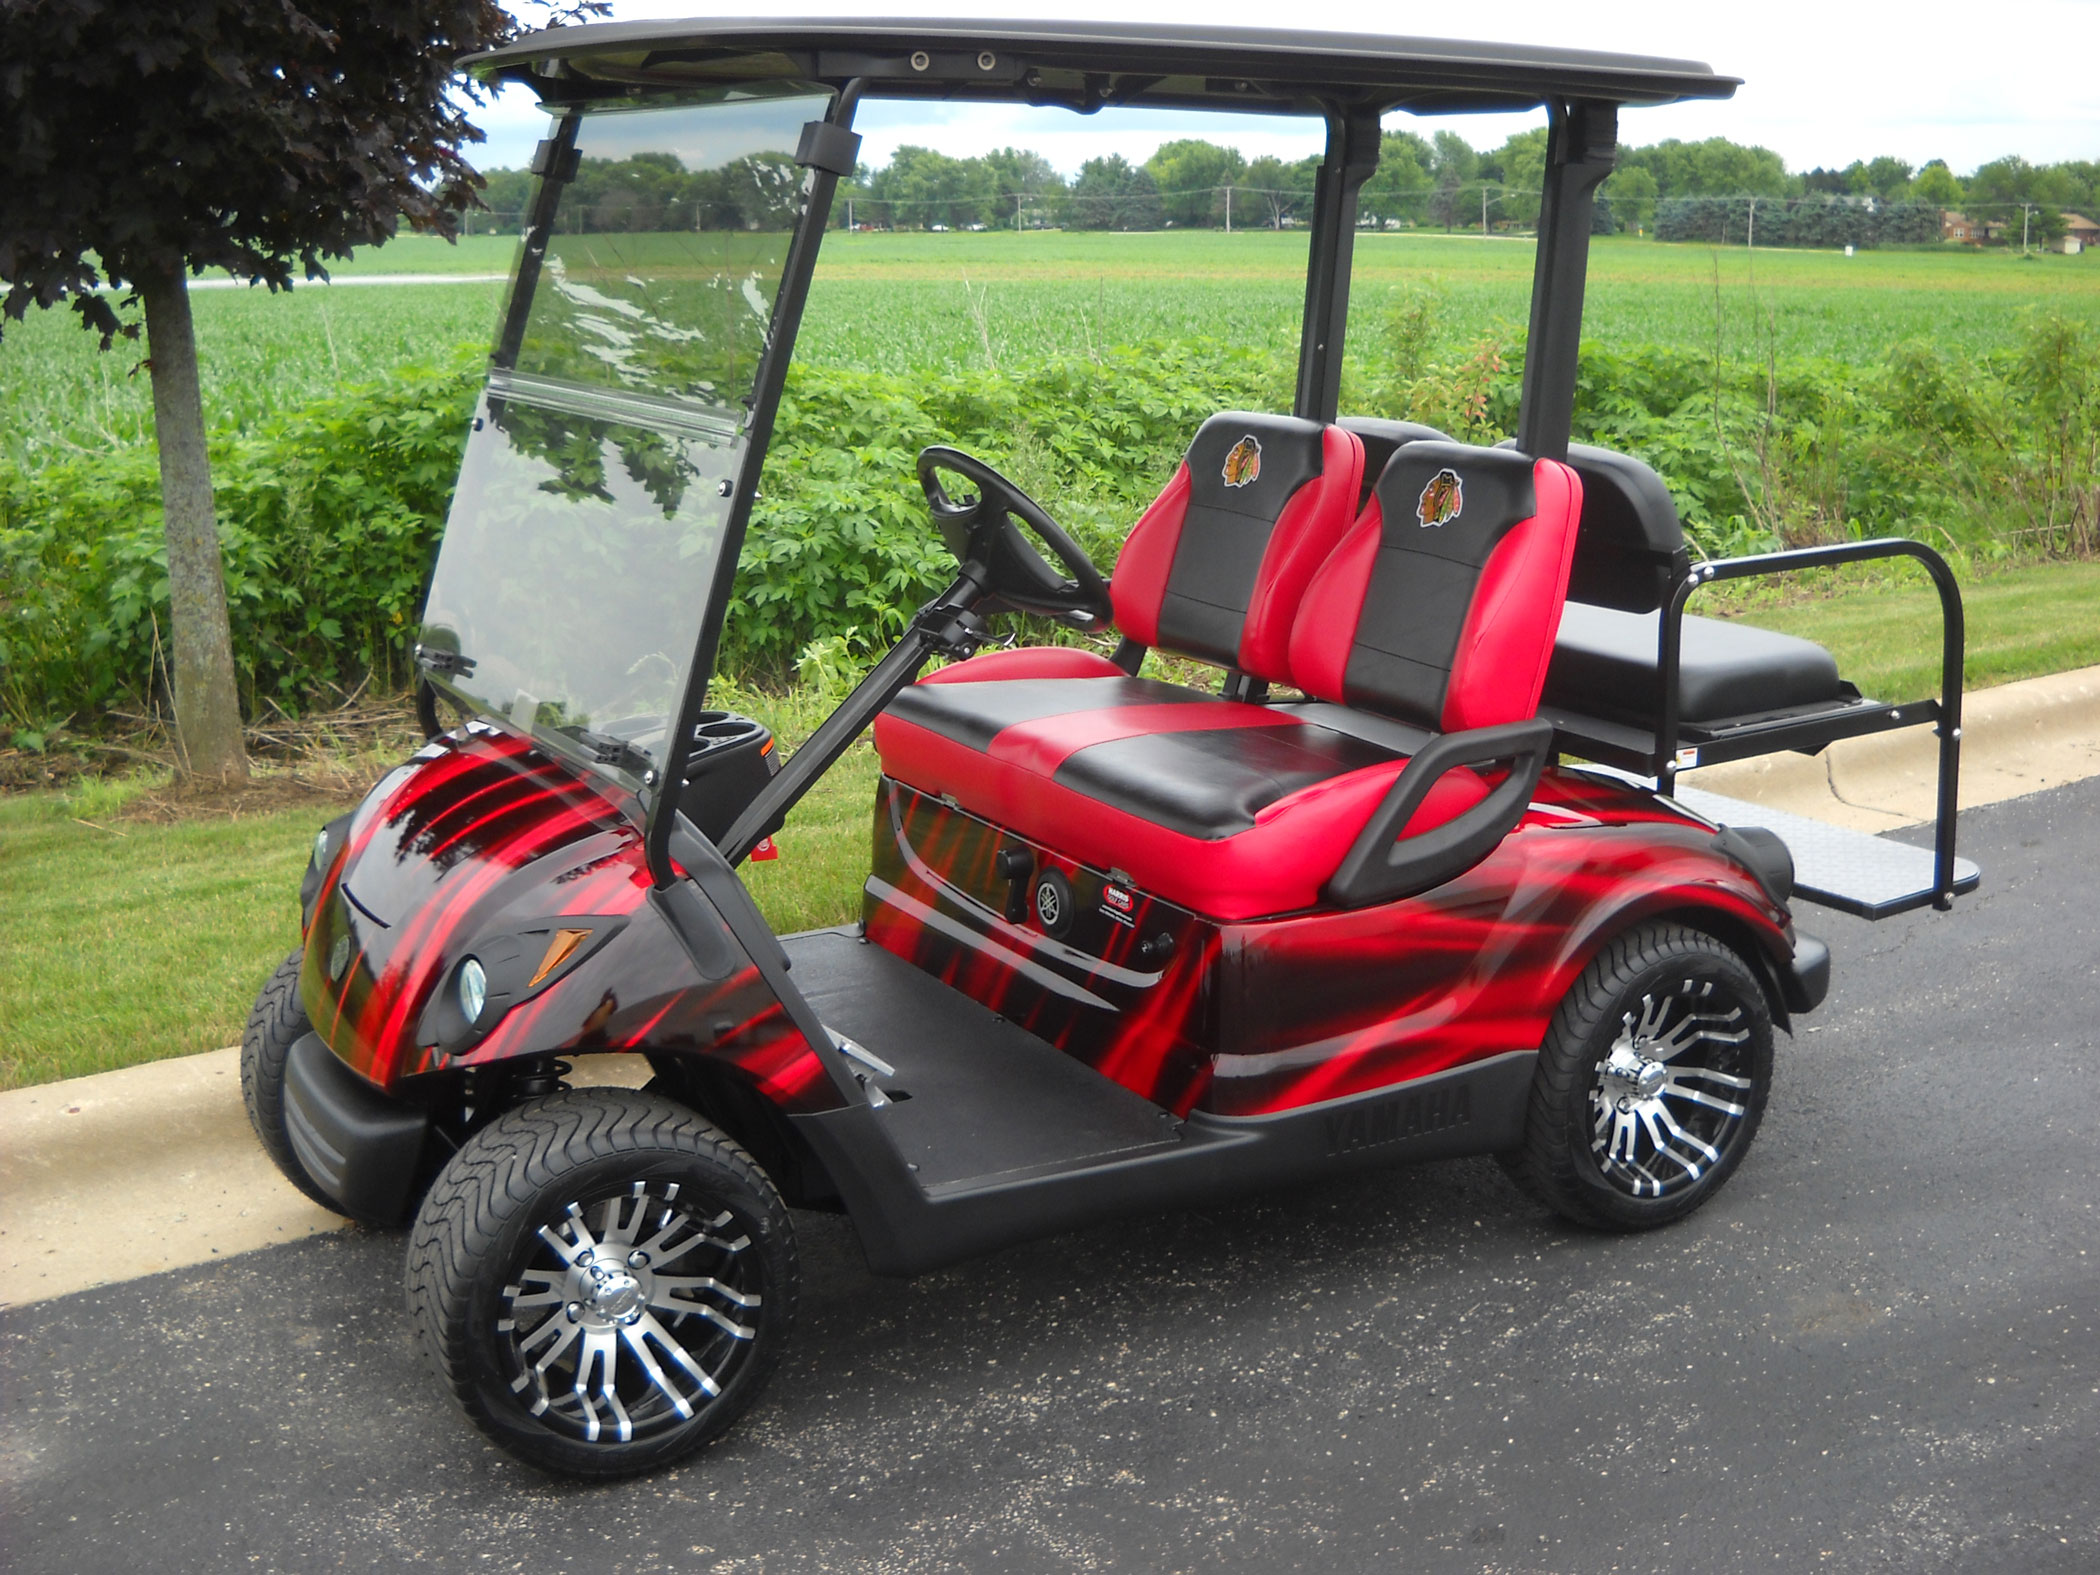 2010 yamaha ydra chicago blackhawks 4 passenger